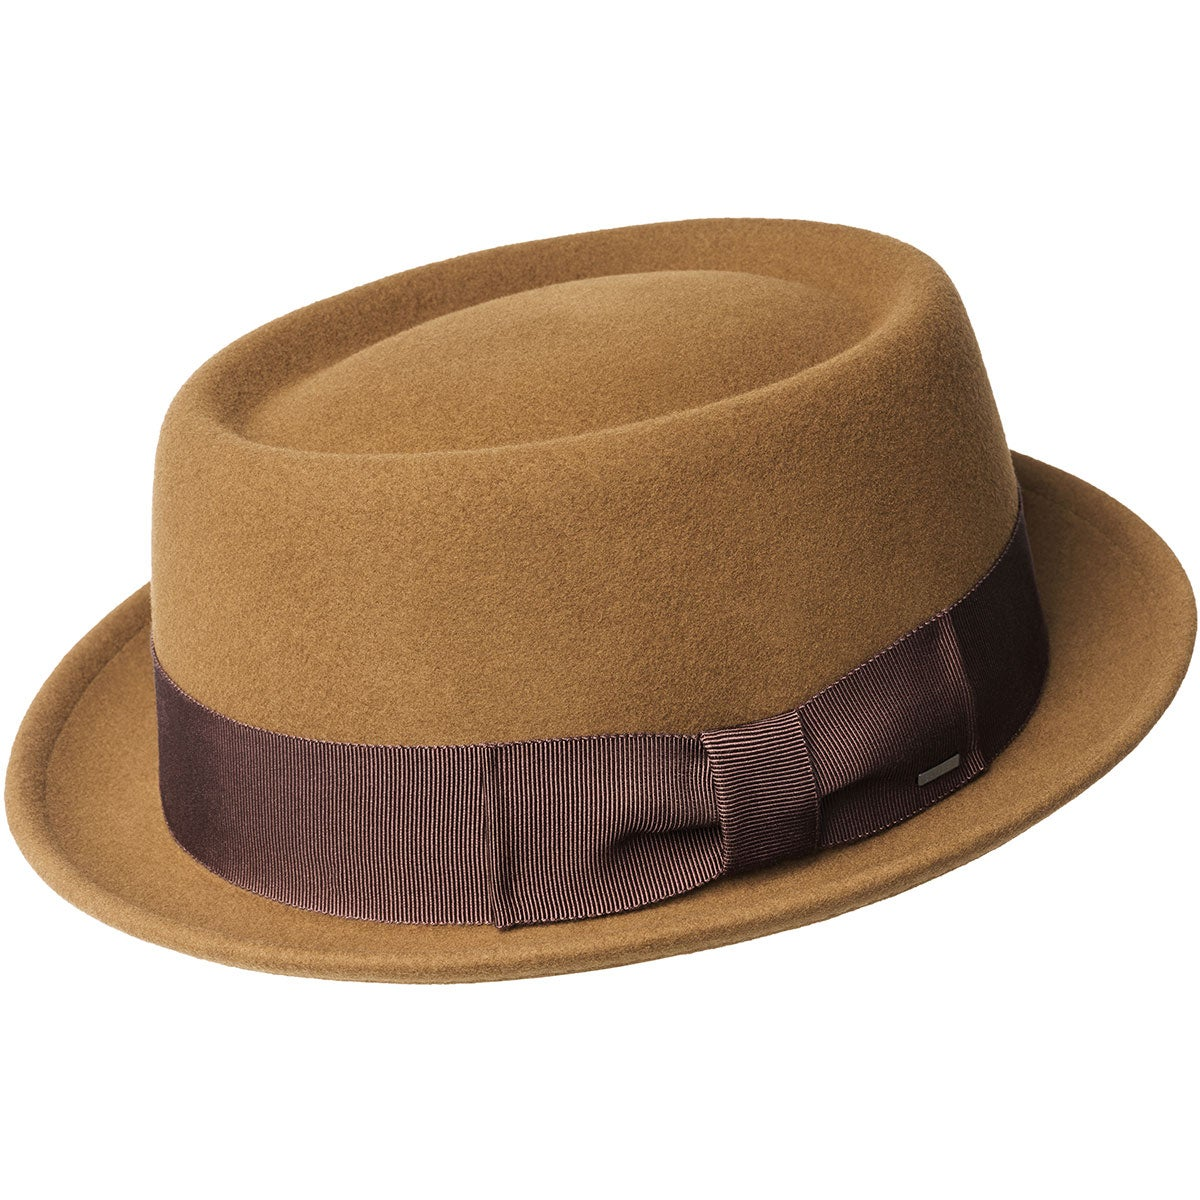 1950s Mens Hats | 50s Vintage Men's Hats Darron LiteFelt Pork Pie $95.00 AT vintagedancer.com